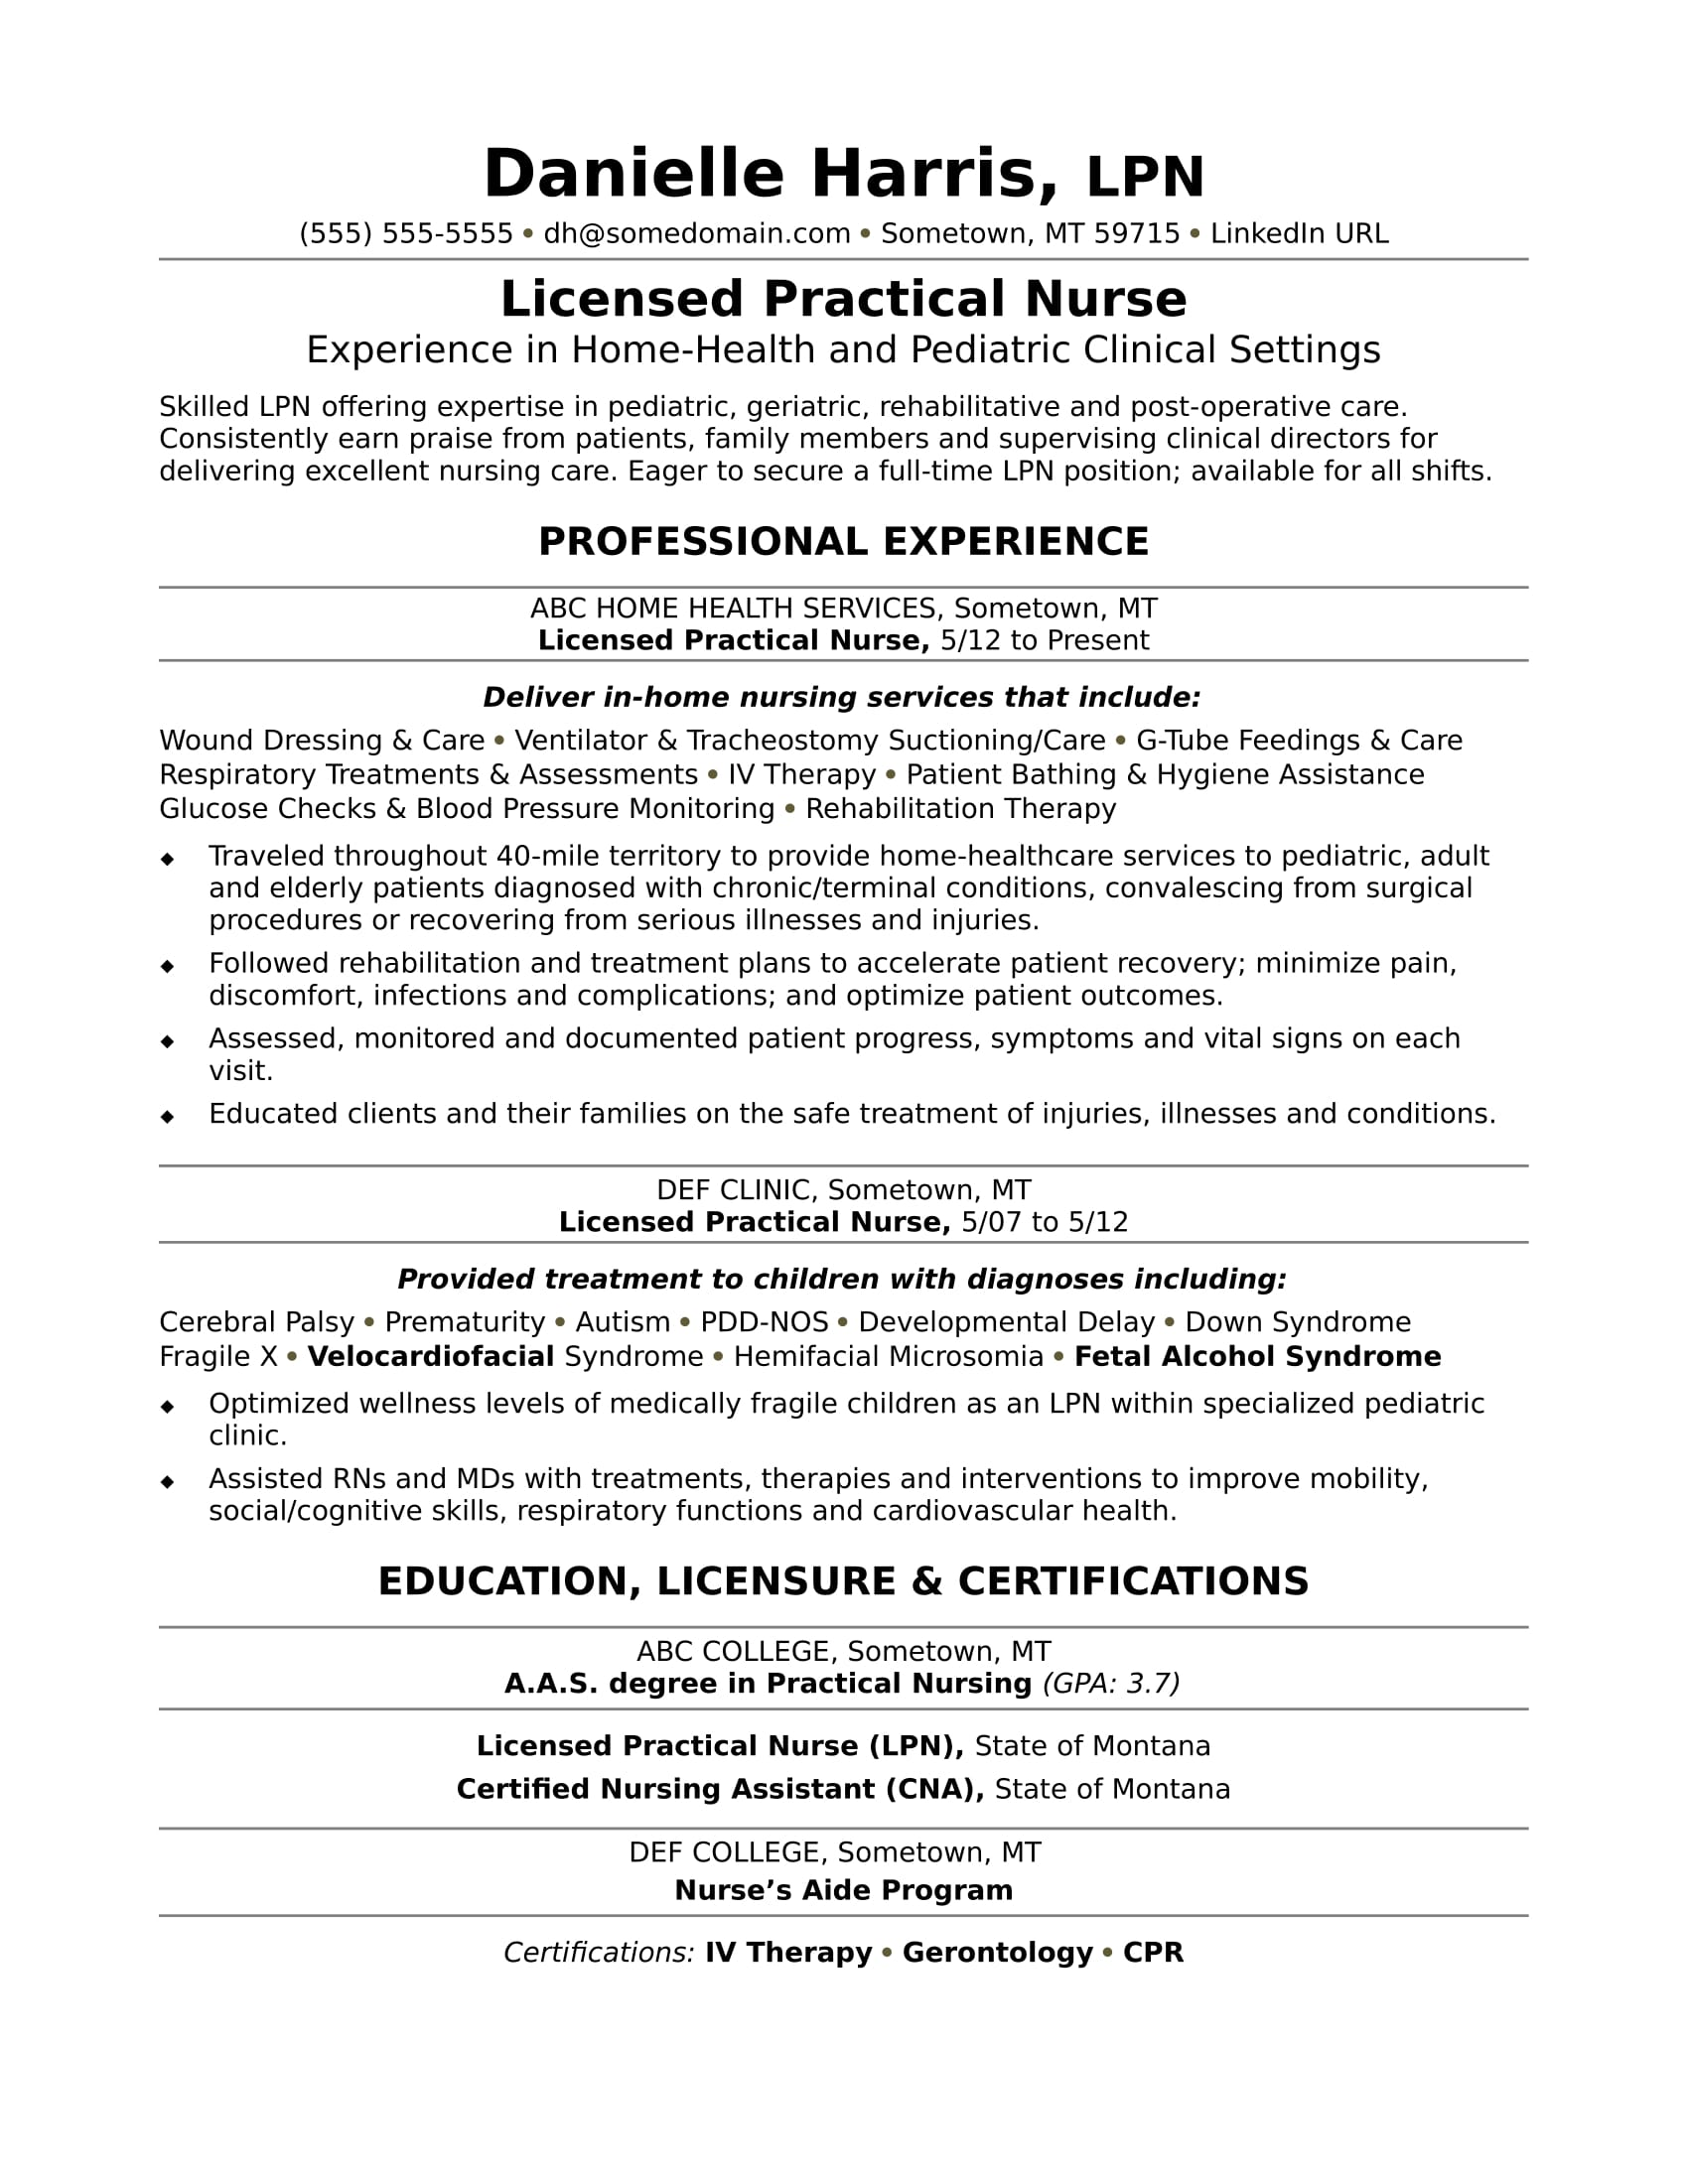 licensed practical nurse resume sample - How To Present A Resume